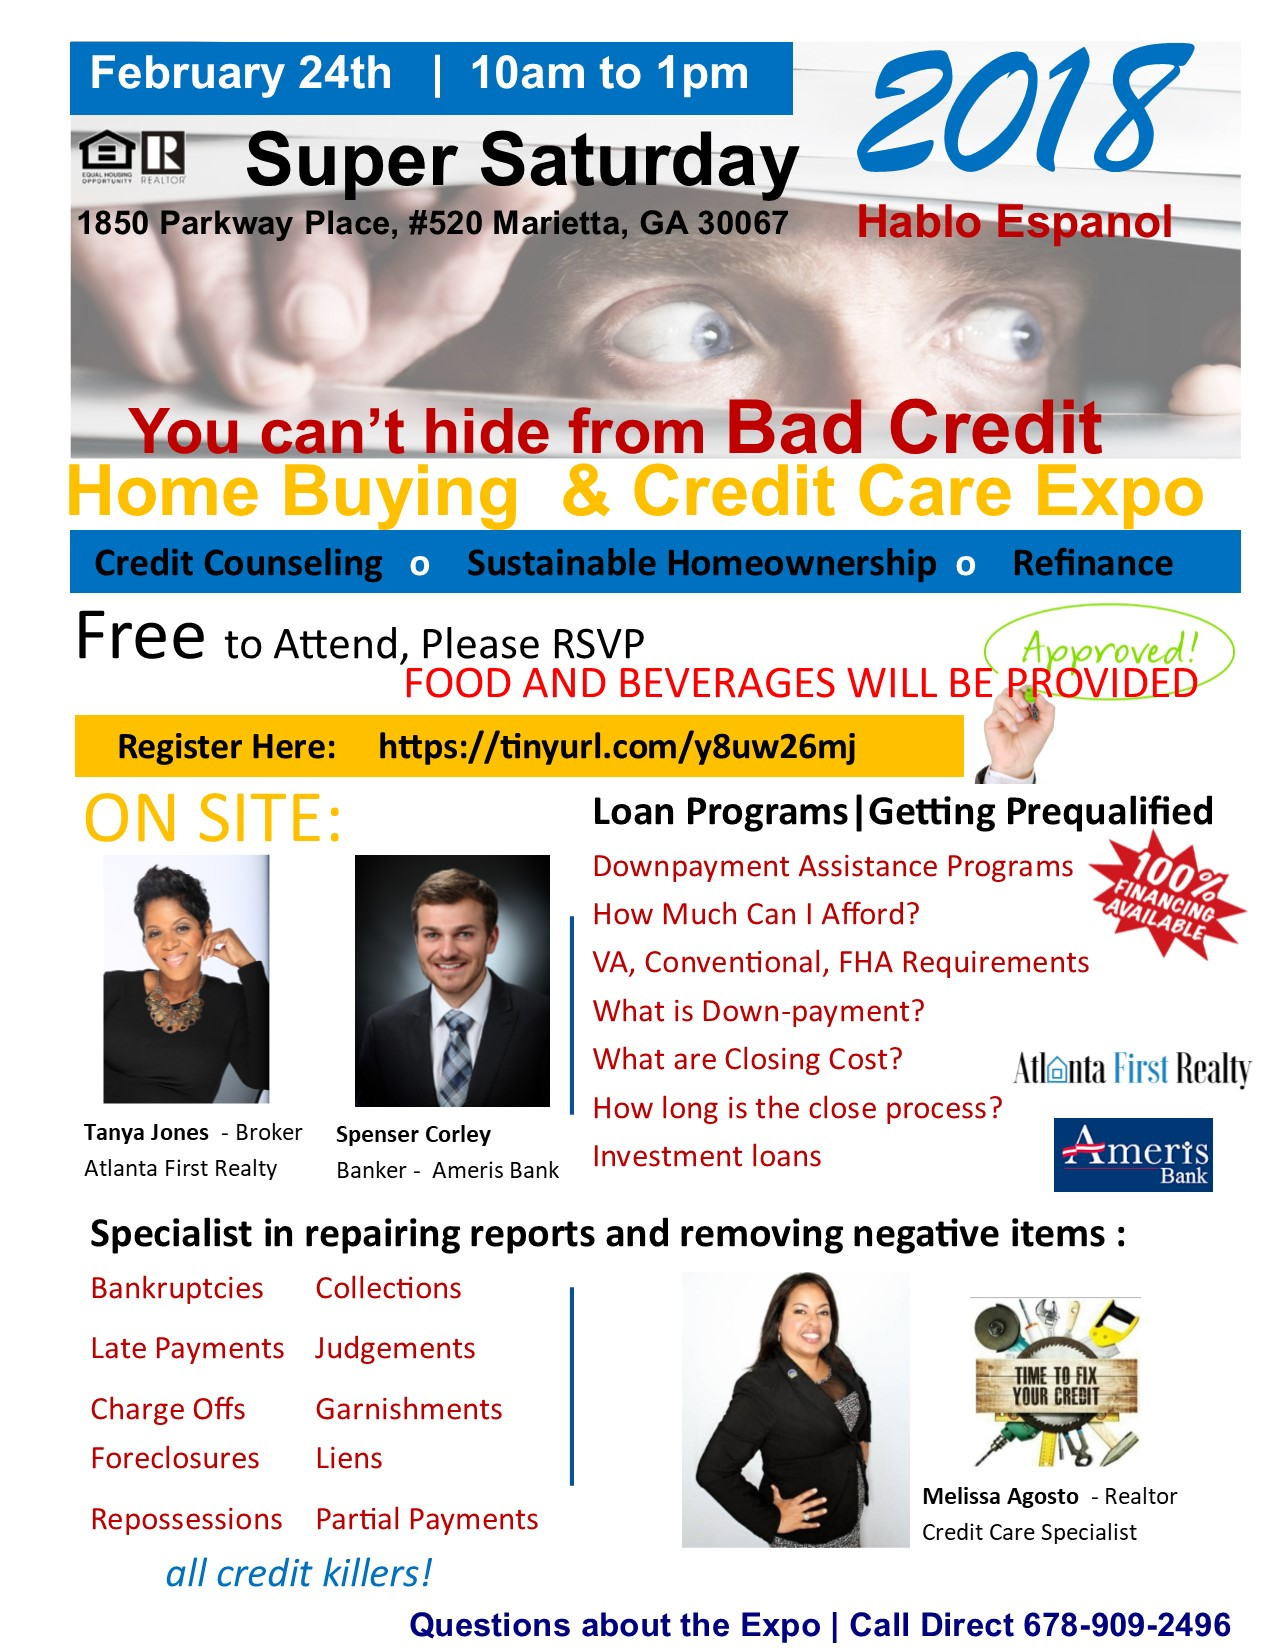 Home buying credit care expo tickets sat feb 24 2018 at 1000 mortage lender onsite to discuss options in qualifying for a home loan downpayment assistance refinancing options and much more malvernweather Images